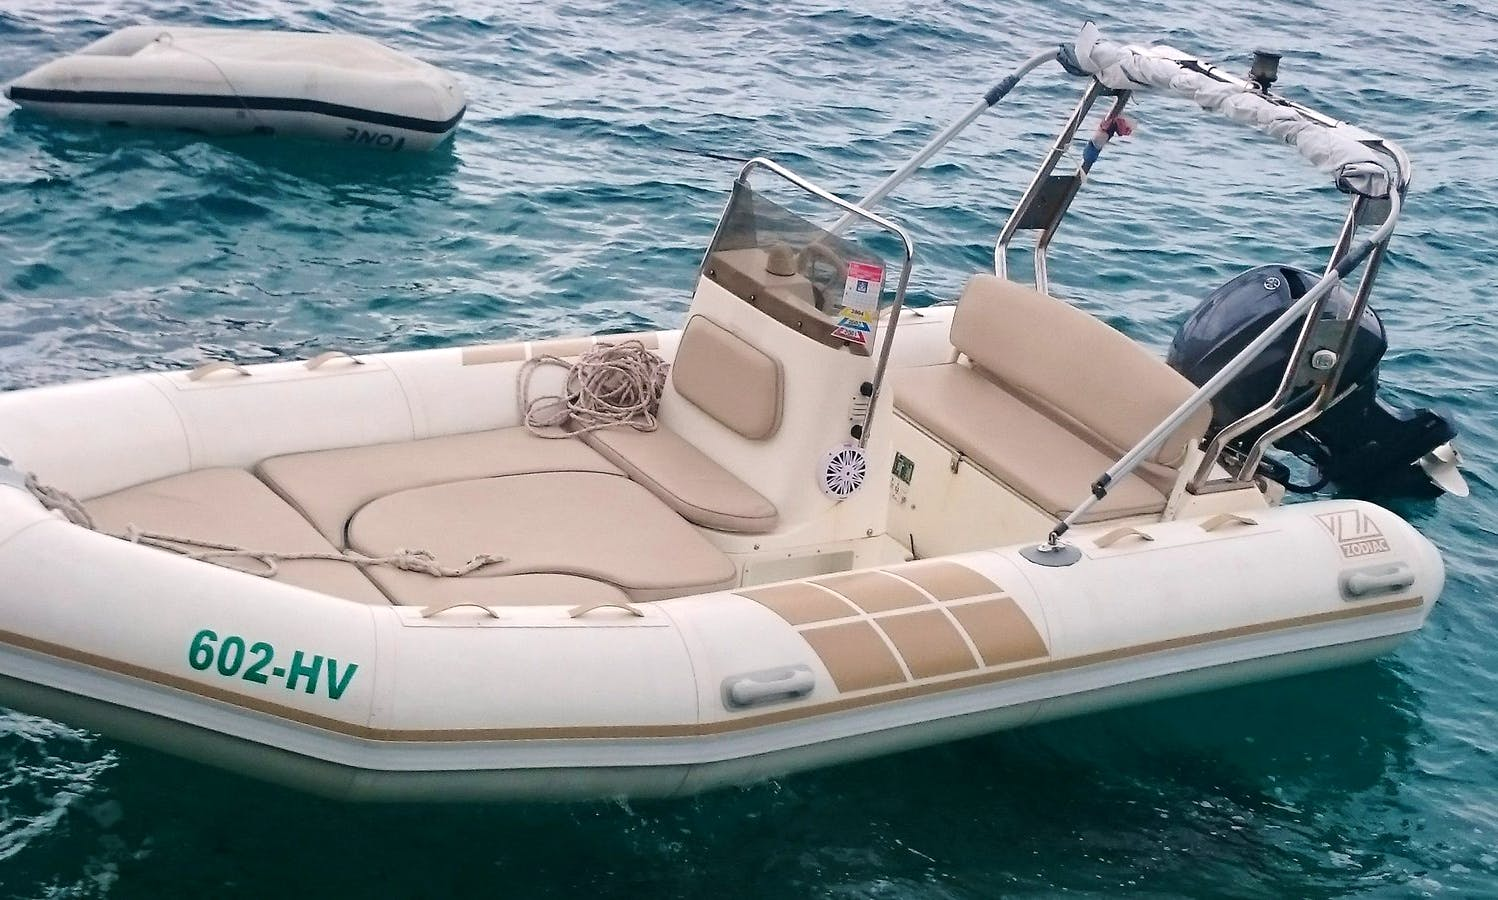 Rent 16' Zodiac Medline 60hp Rigid Inflatable Boat in Hvar, Croatia